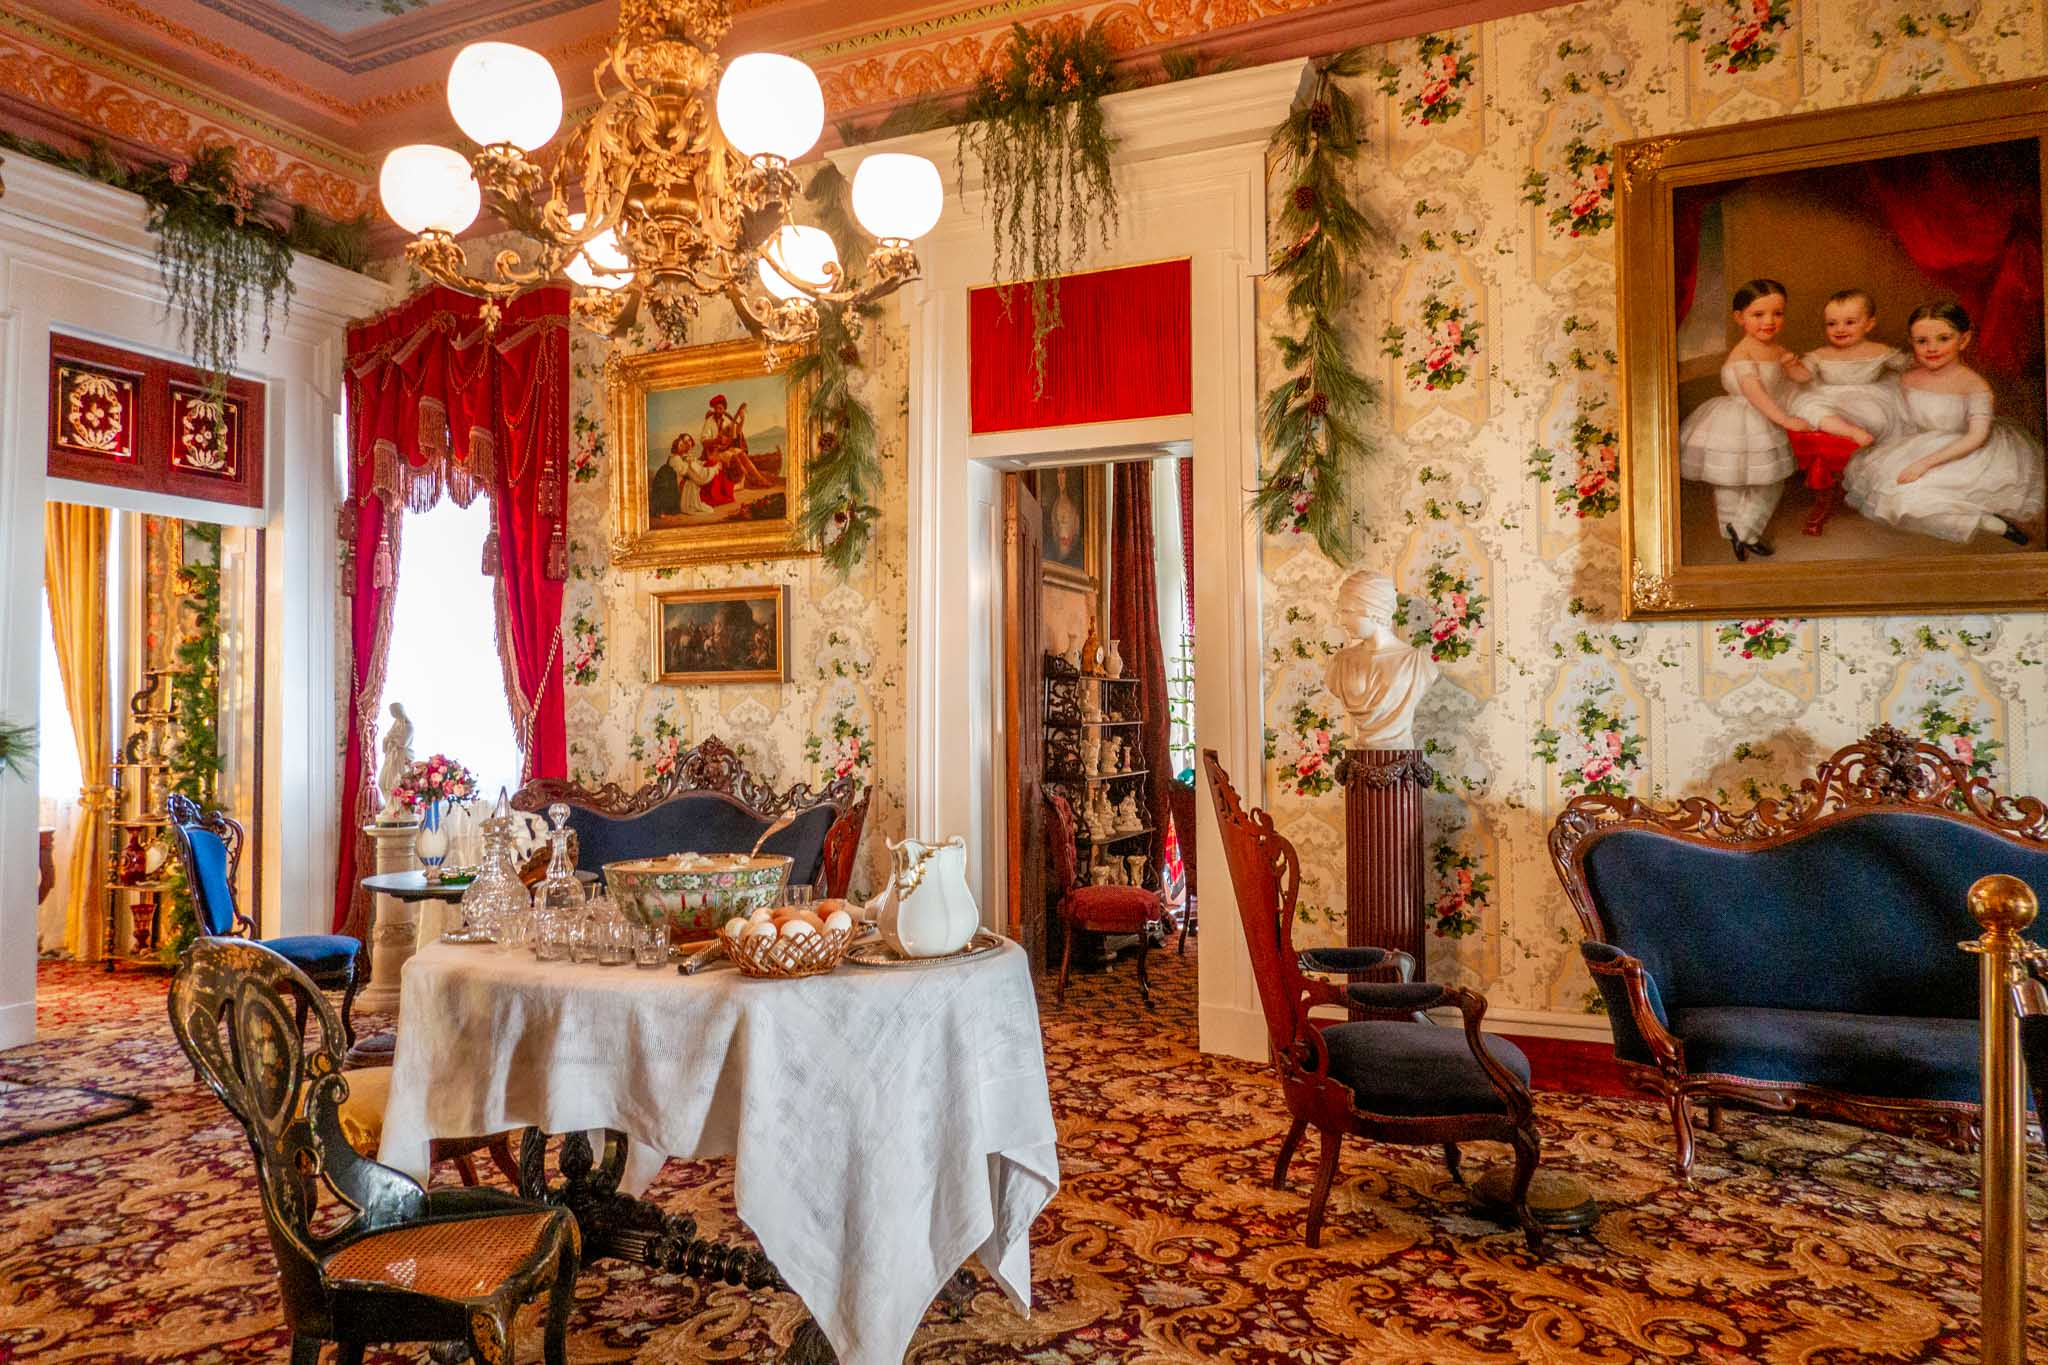 Sitting room with table, chairs, a portrait, and decorations at Belmont Mansion